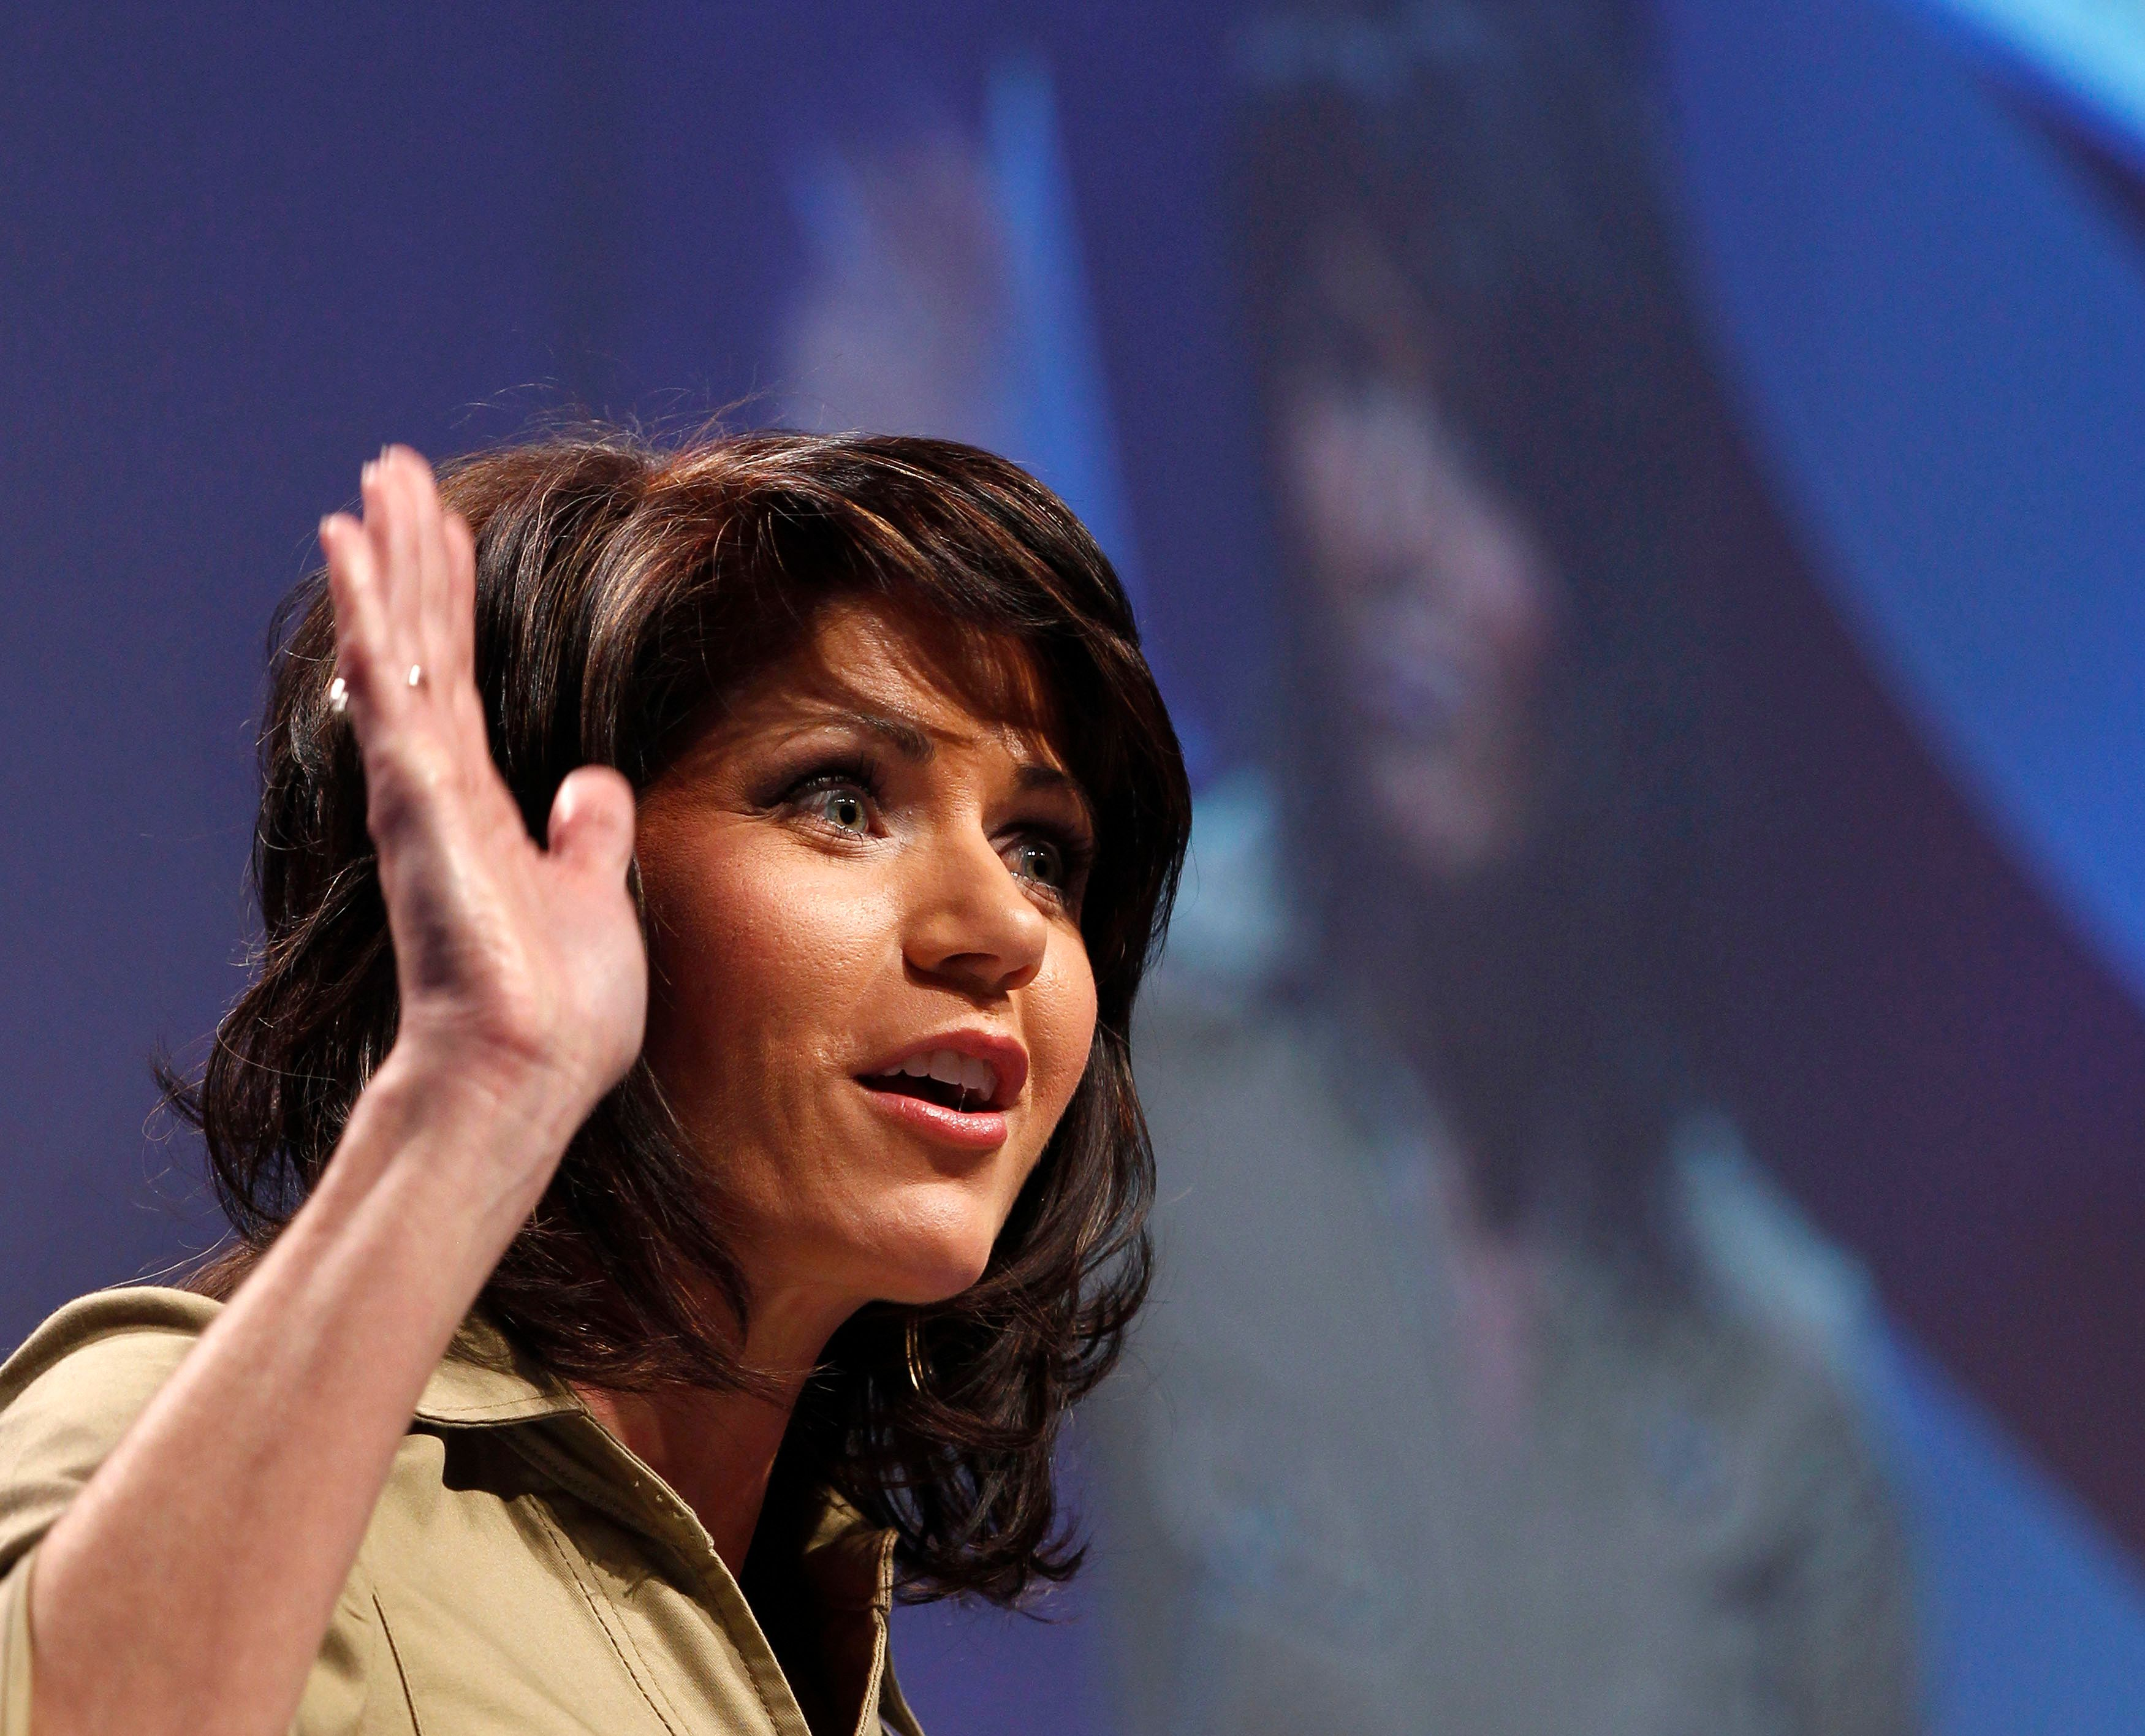 U.S. Representative Kristi Noem (R-SD) gestures while speaking to the 38th annual Conservative Political Action Conference meeting at the Marriott Wardman Park Hotel in Washington, February 10, 2011. The CPAC is a project of the American Conservative Union Foundation. REUTERS/Larry Downing (UNITED STATES - Tags: POLITICS)